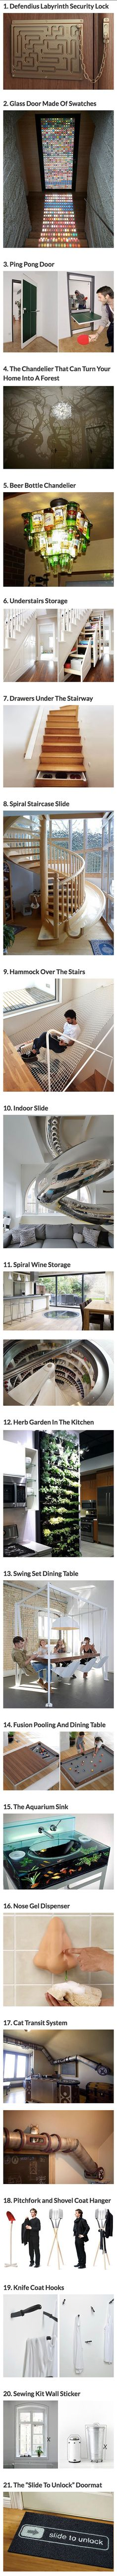 5m2 bad ideen  best cool images on pinterest in   gifts cool stuff and